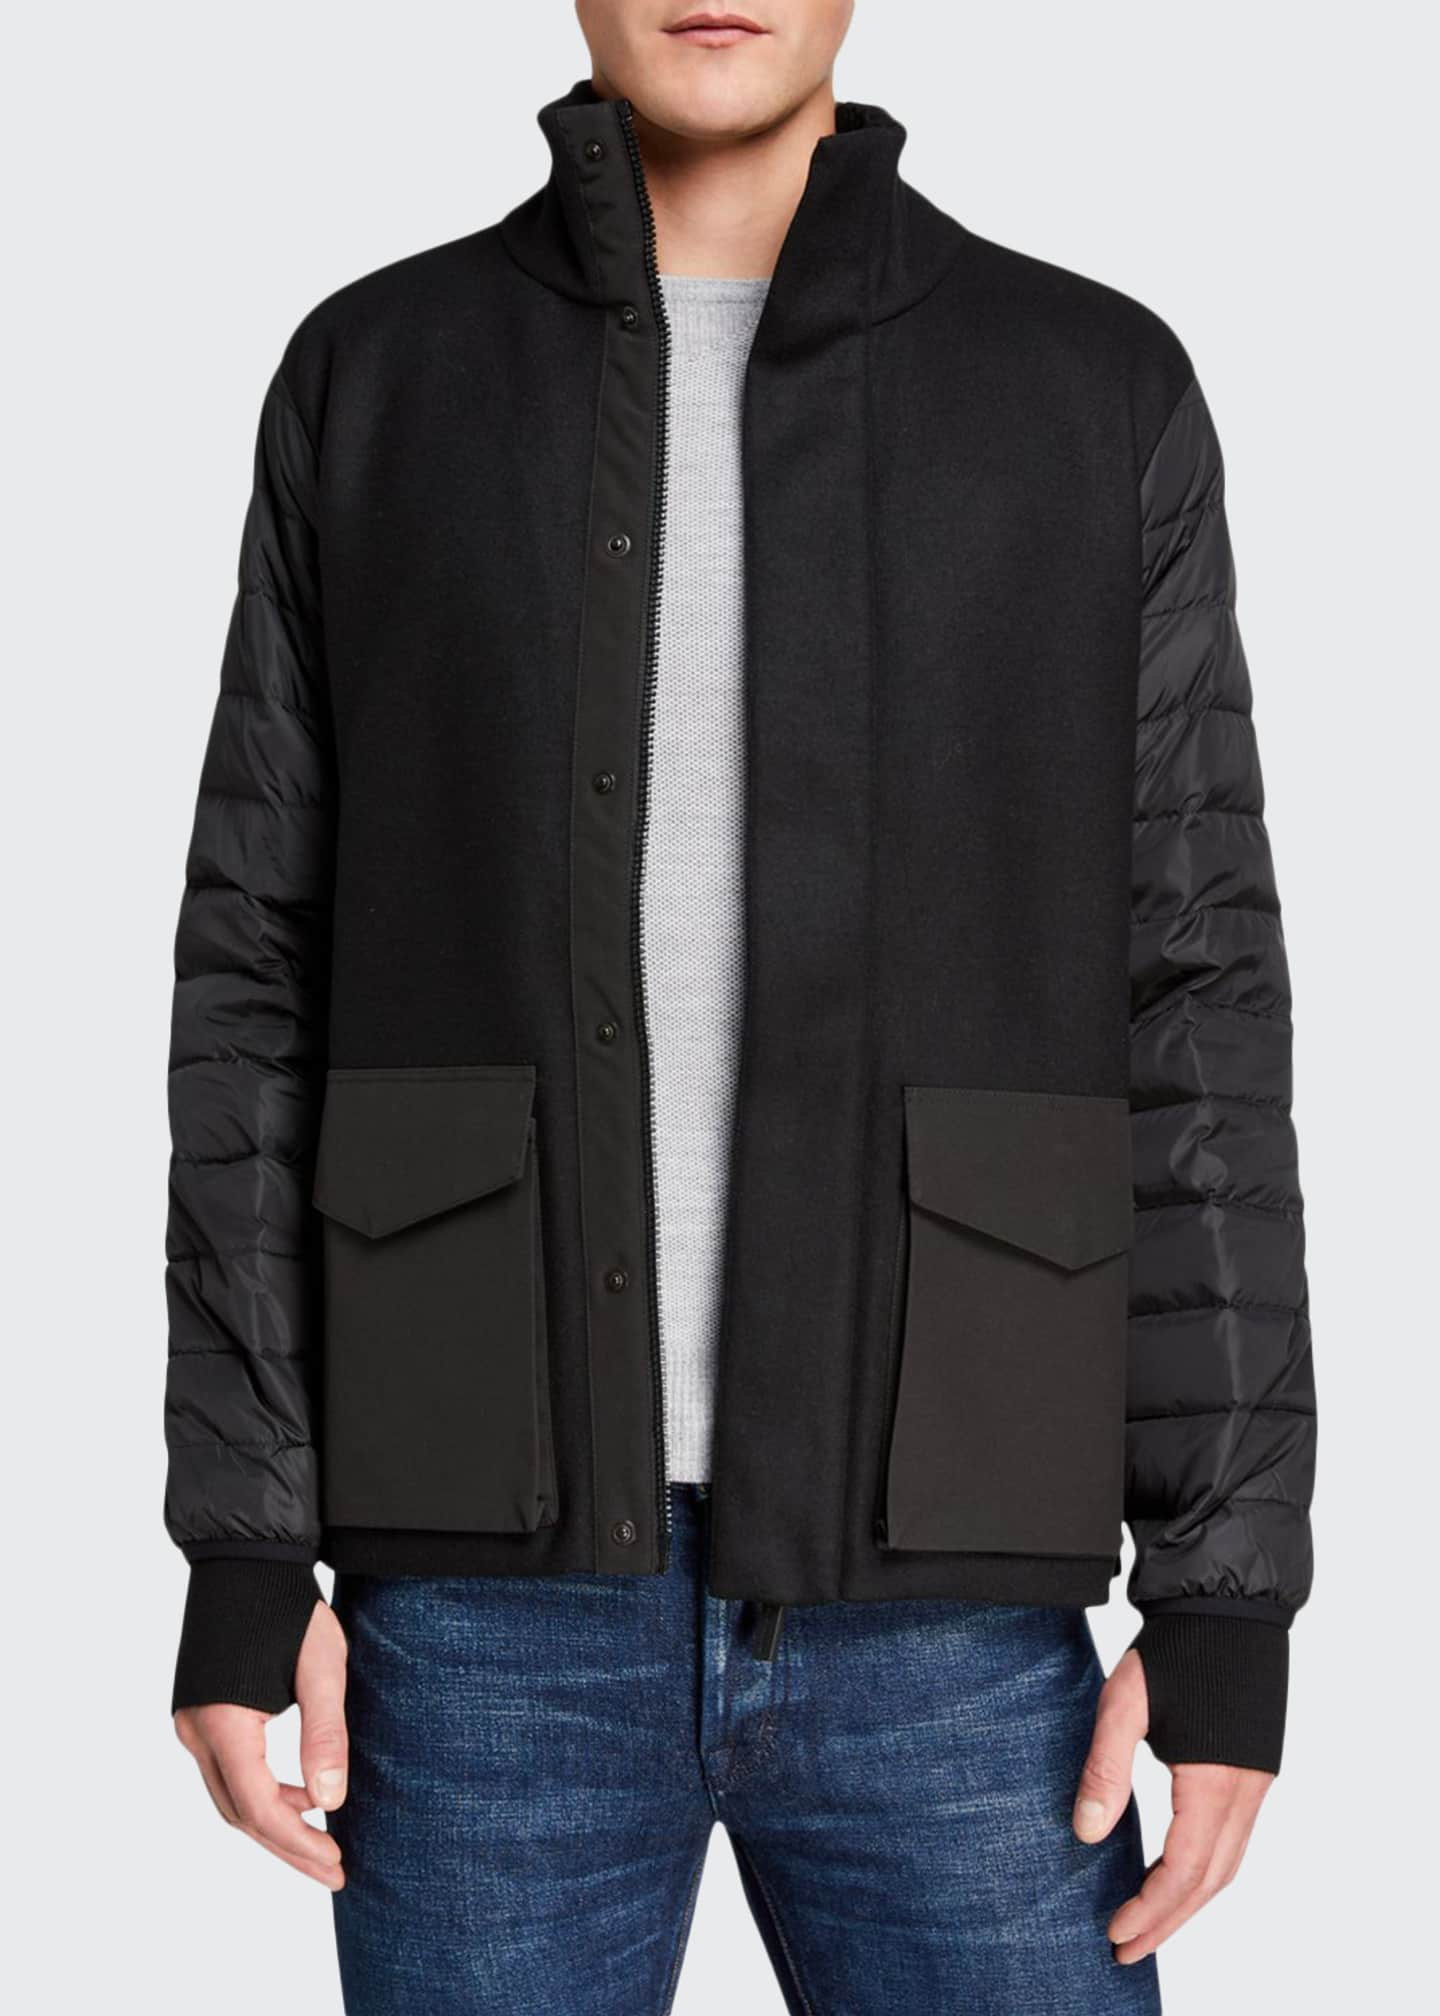 Canada Goose Men's Glenwood Knit Jacket